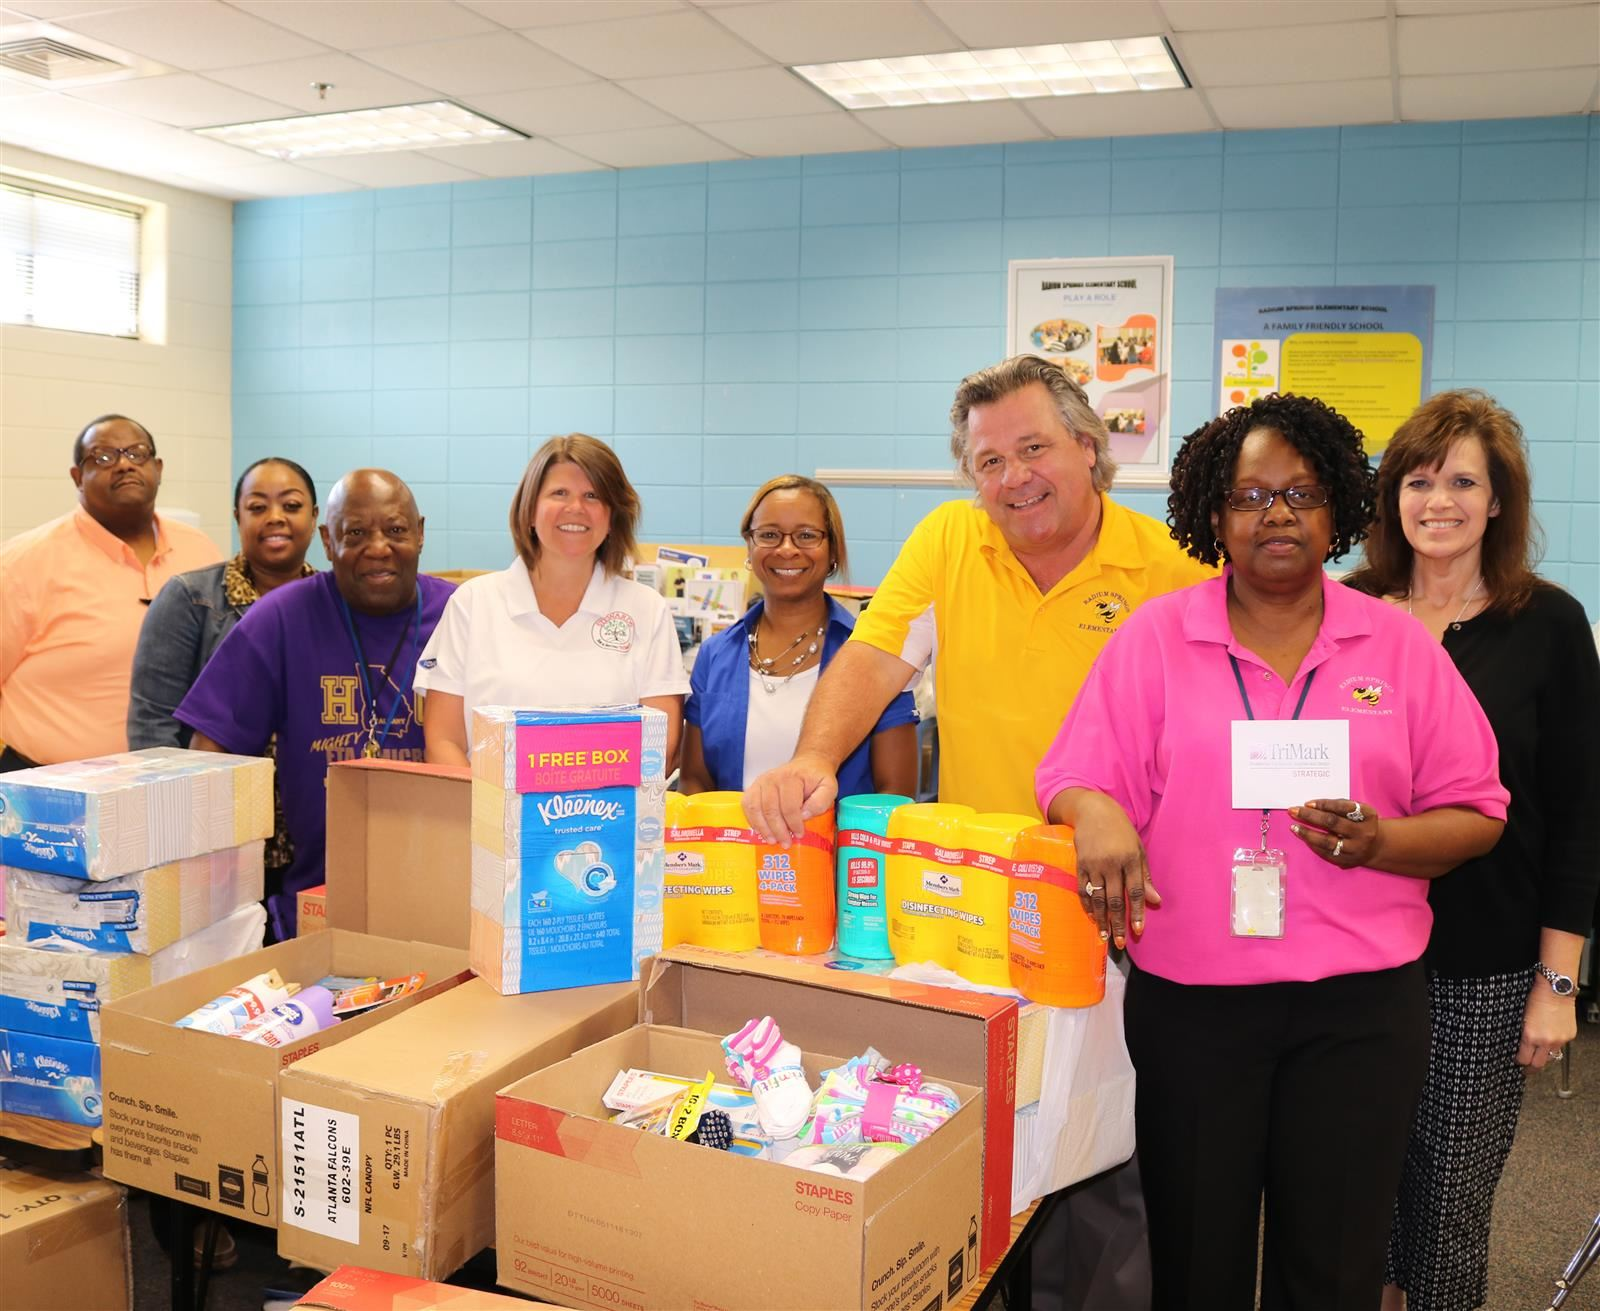 Trimark donates materials to Radium Elementary